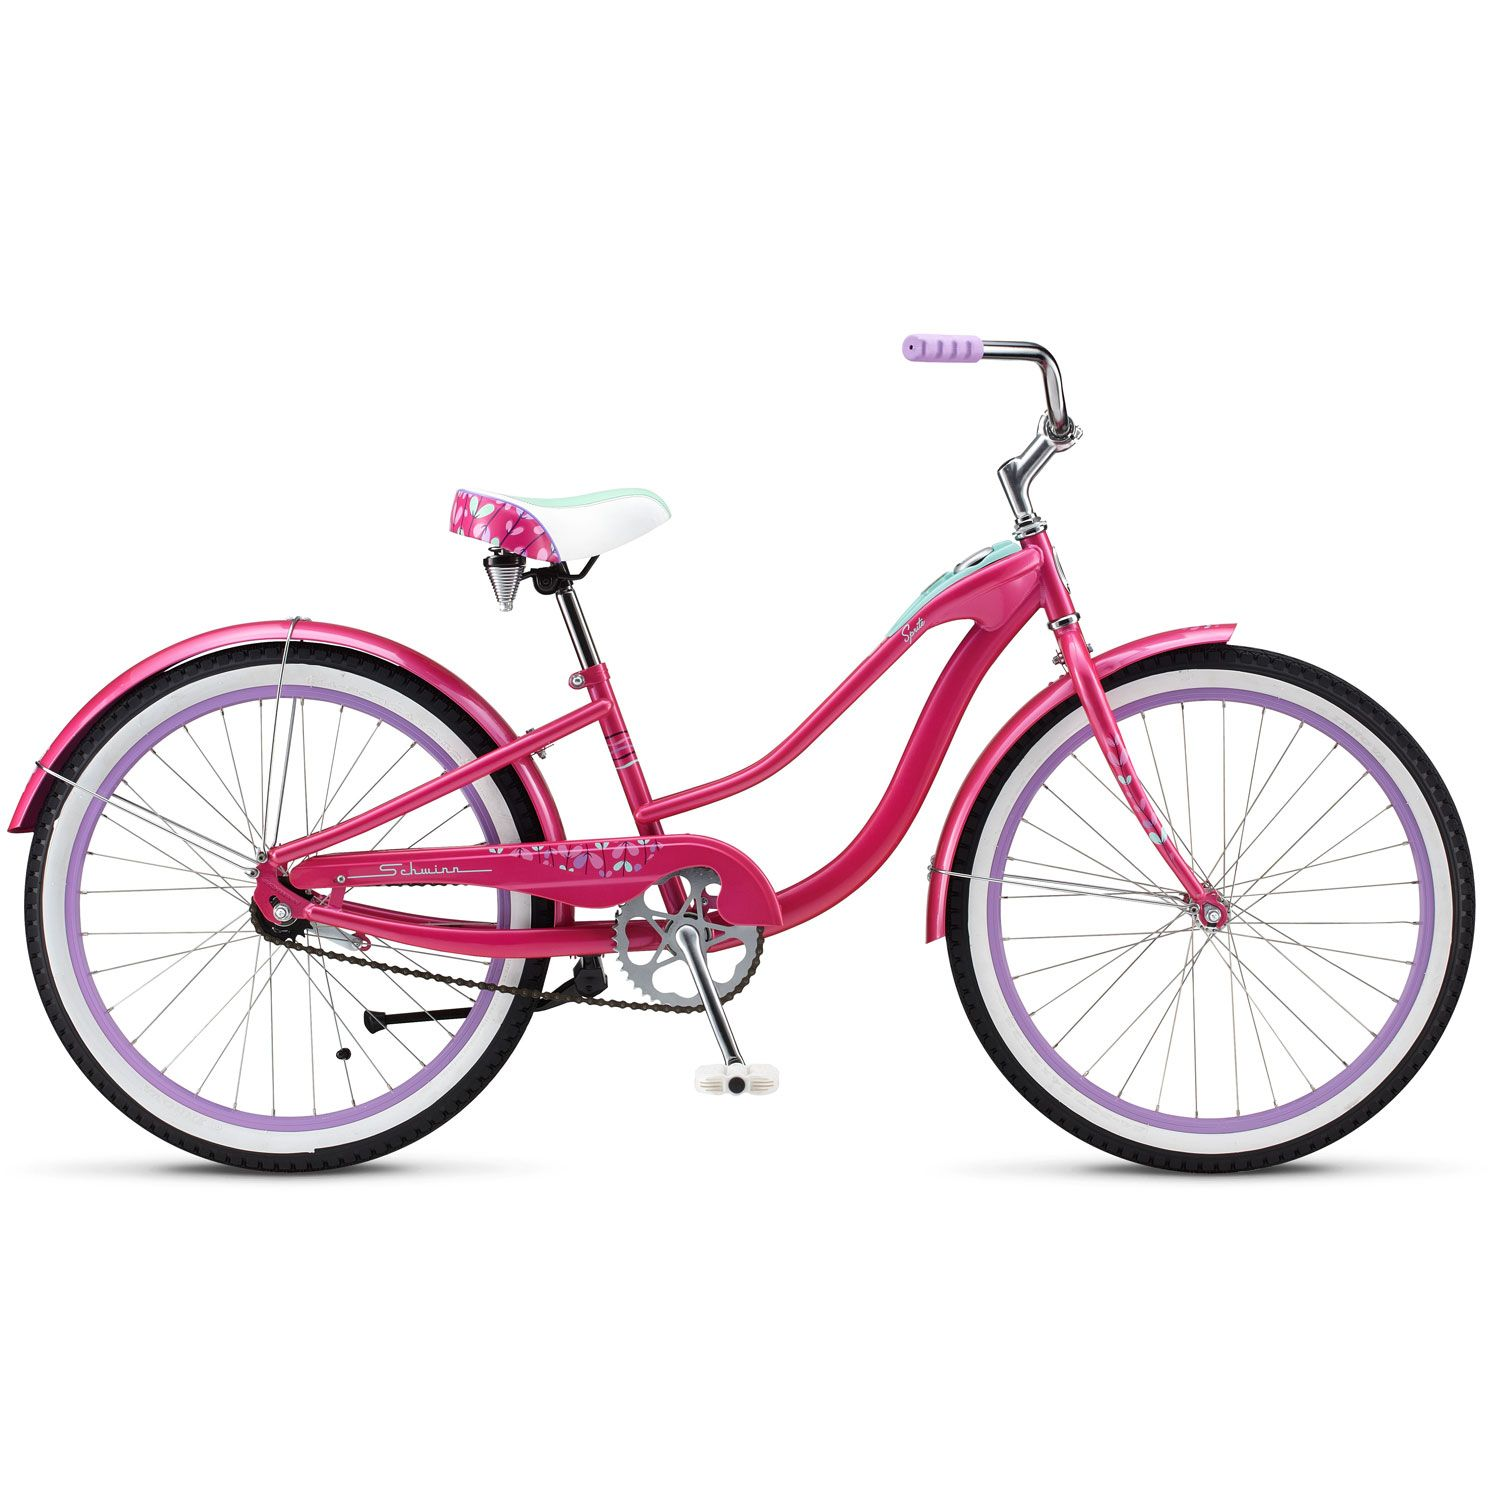 "Schwinn Sprite 24"" Beach Cruiser 2014 Kids bike"